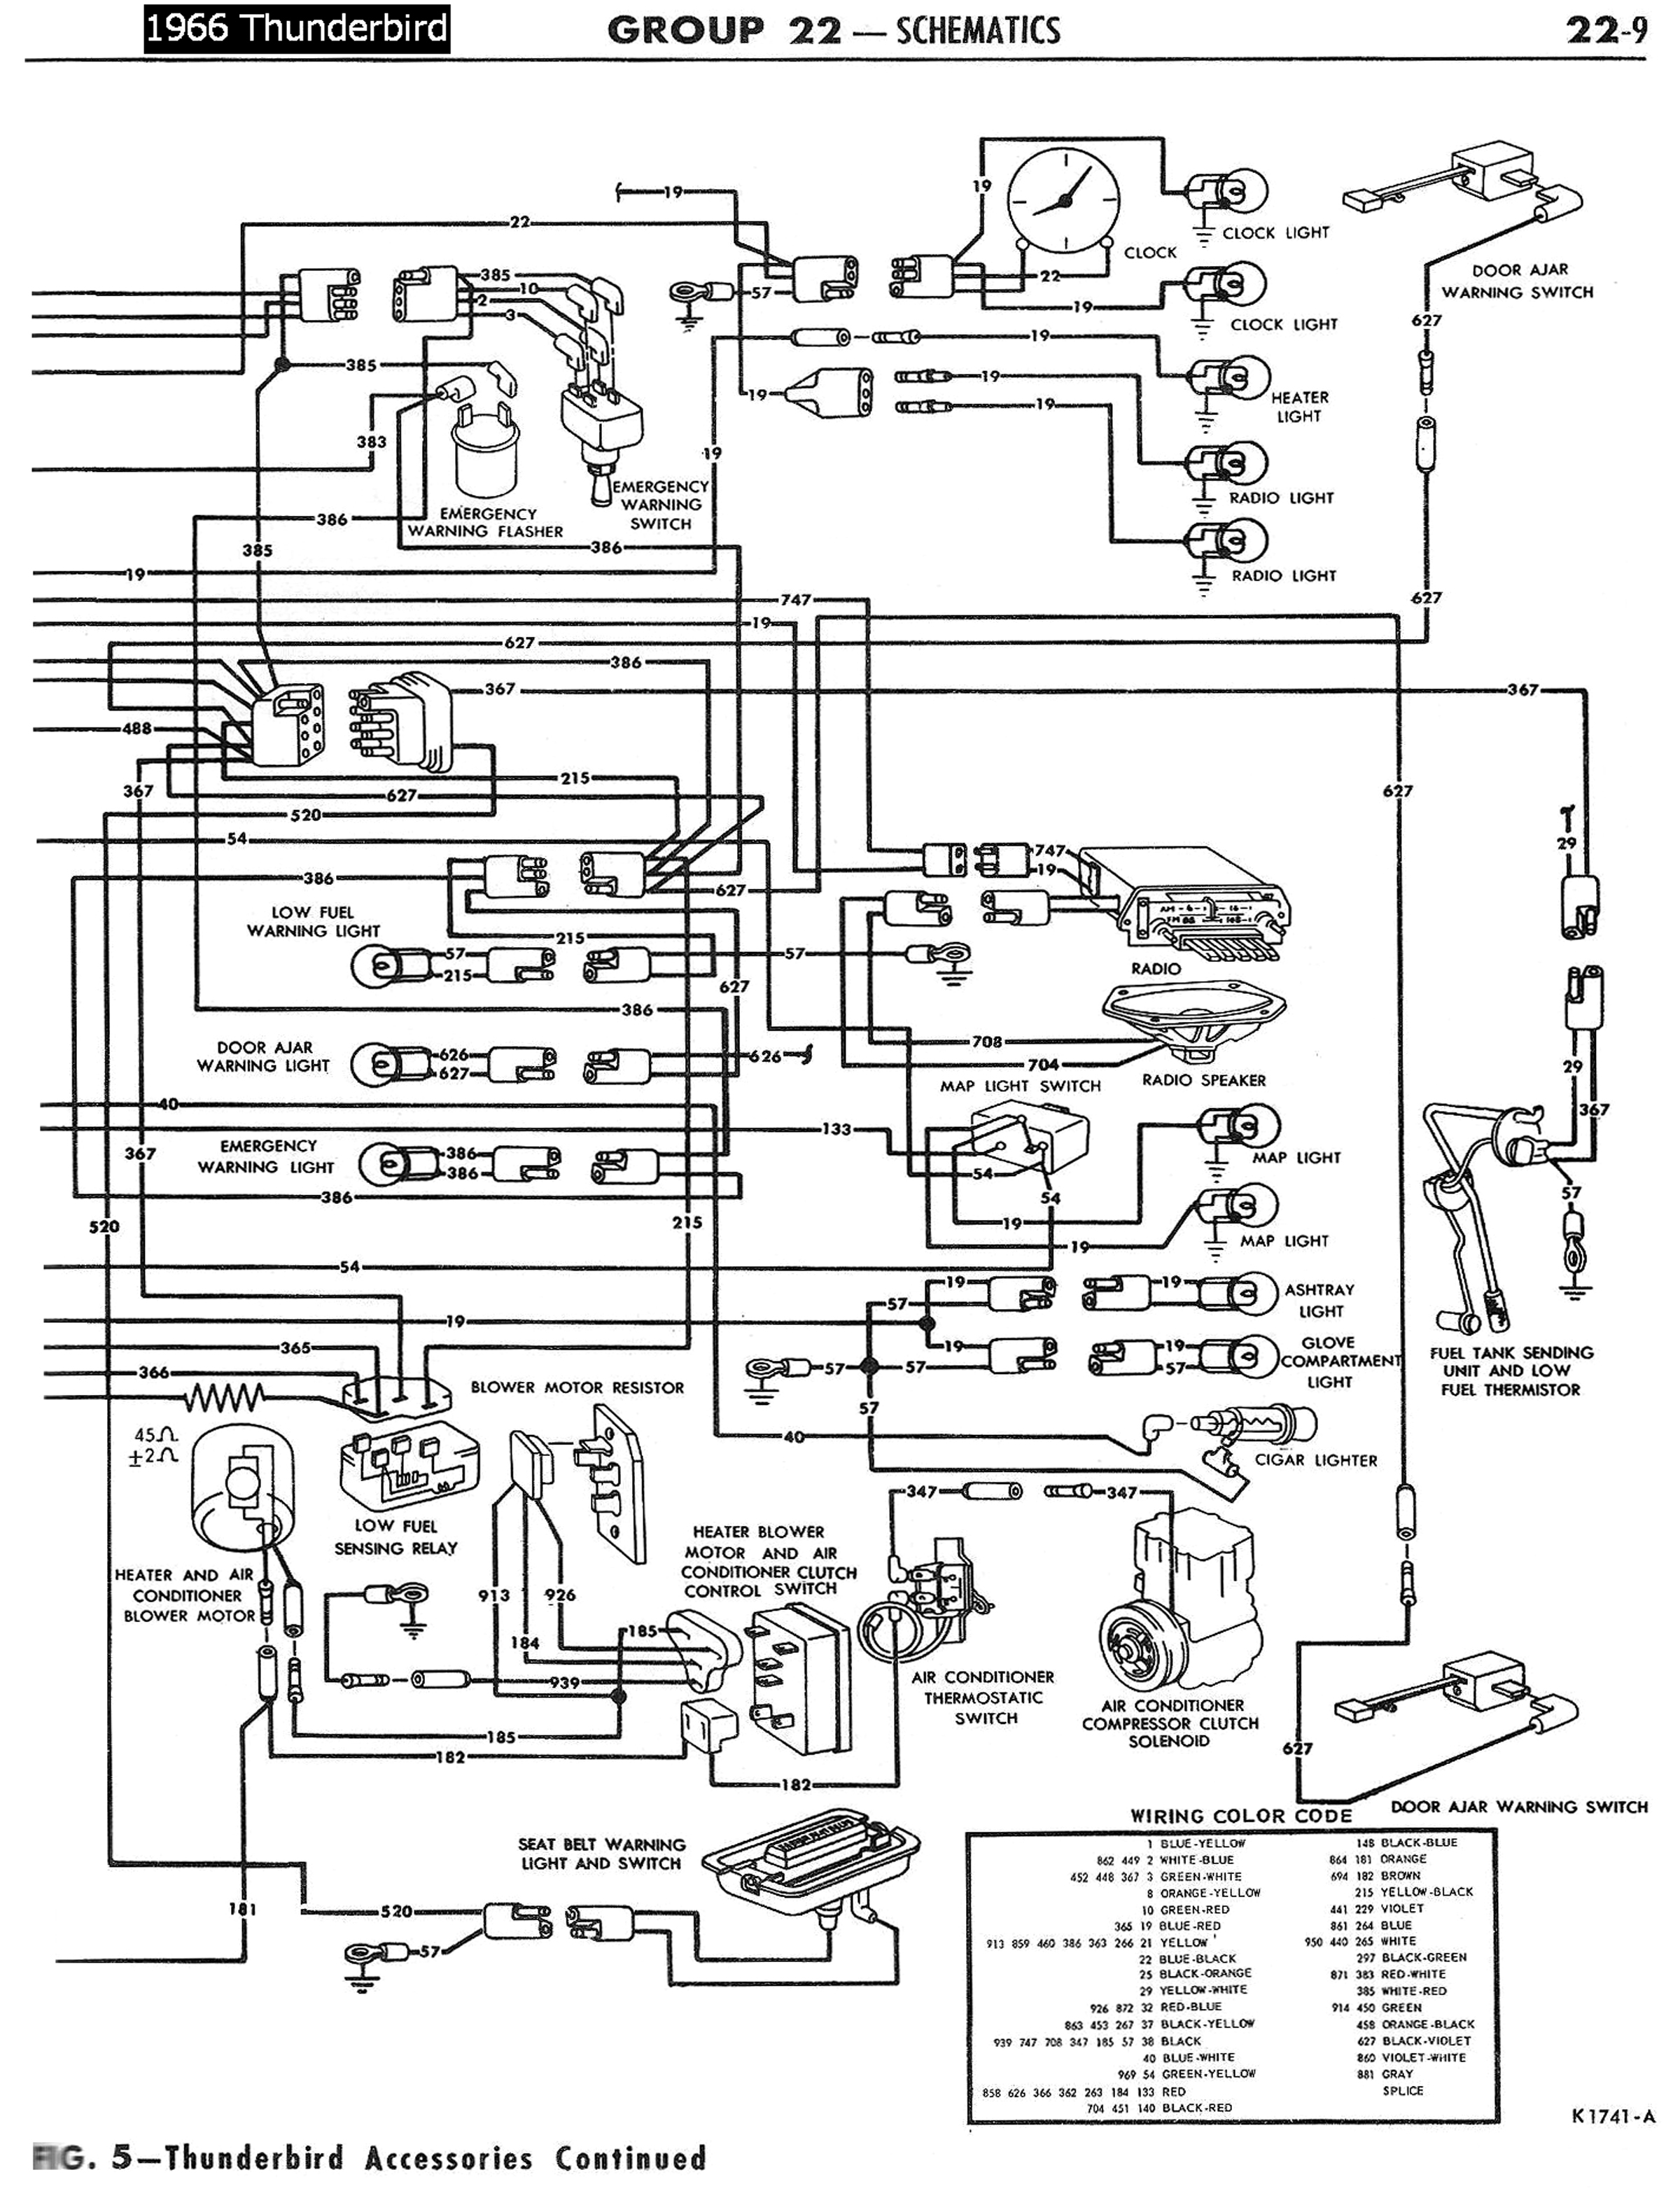 1966 Mustang Wiring Diagram Free Schematics Diagrams Alternator Belt Schematic International Radio U2022 Rh Augmently Co Under Dash